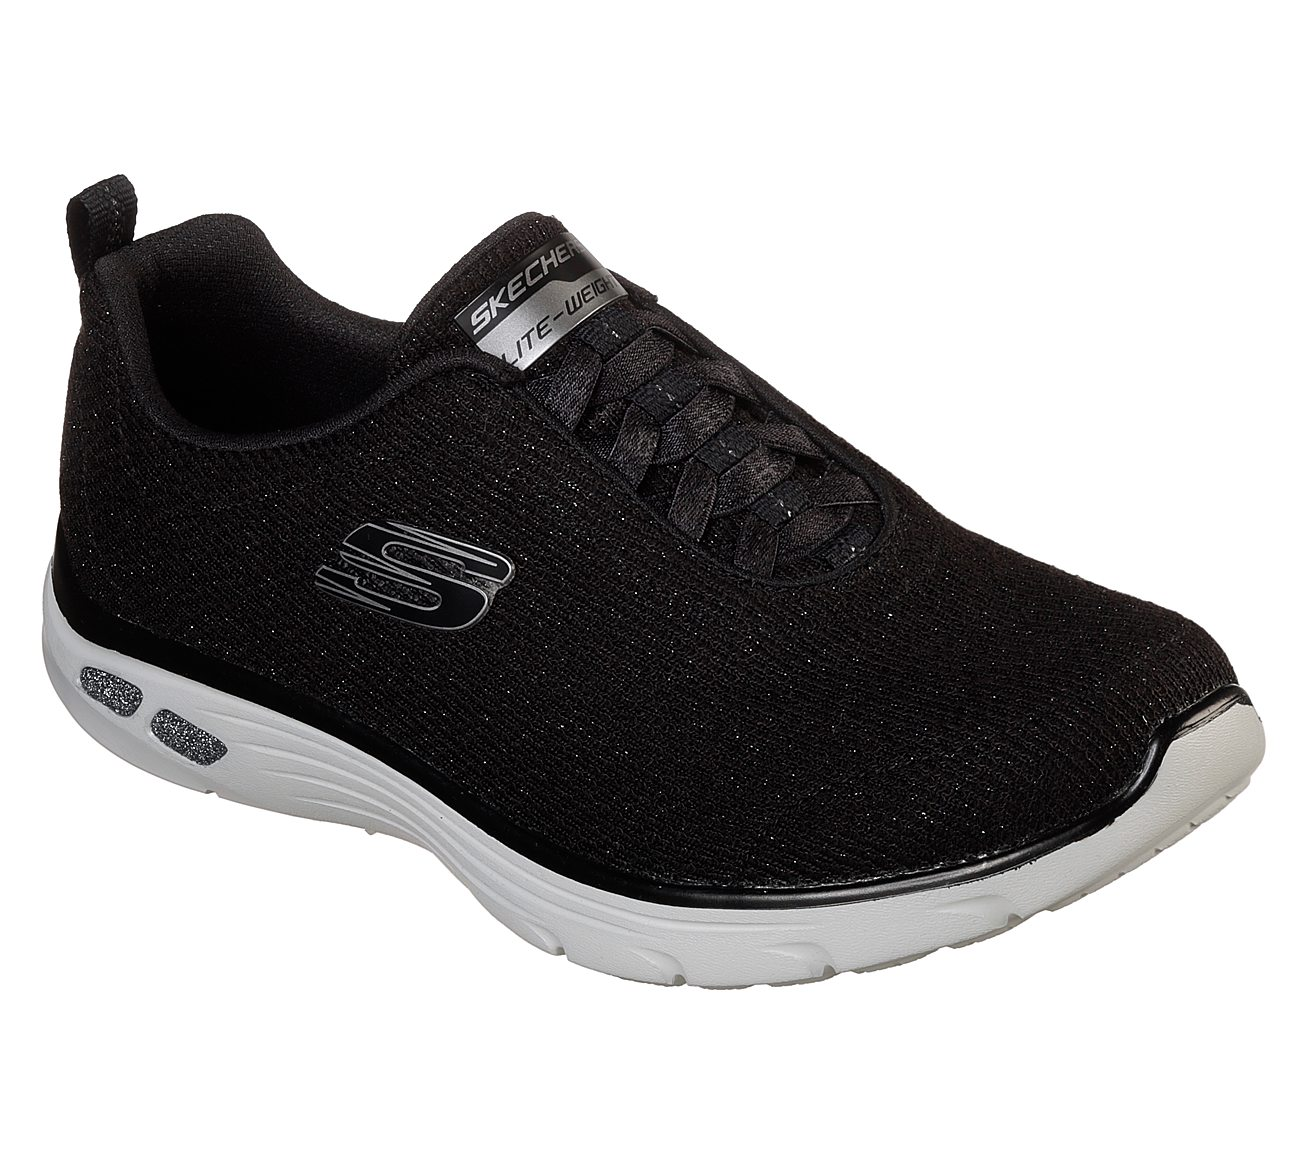 Low Cost Buy Cheap Footlocker Skechers Relaxed Fit Empire D'Lux Burn Bright Sneaker(Women's) -Black/Black Outlet Clearance Cheap Hot Sale Wiki For Sale jts8B